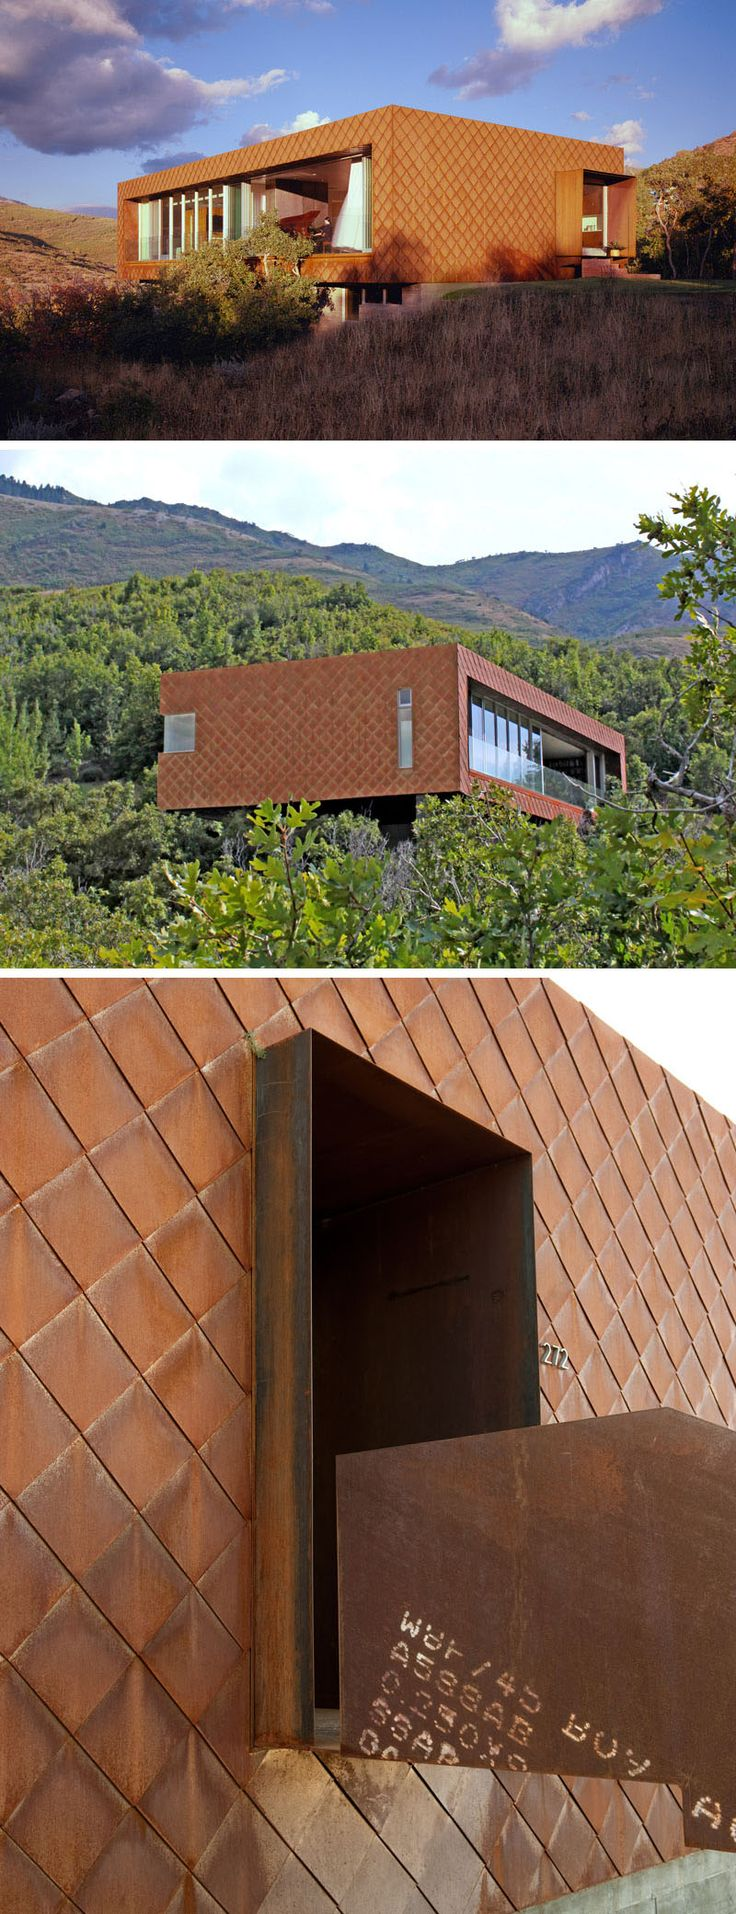 Weathering steel shingles on the exterior of this modern house it give it a textured look that resembles scales on a reptile.